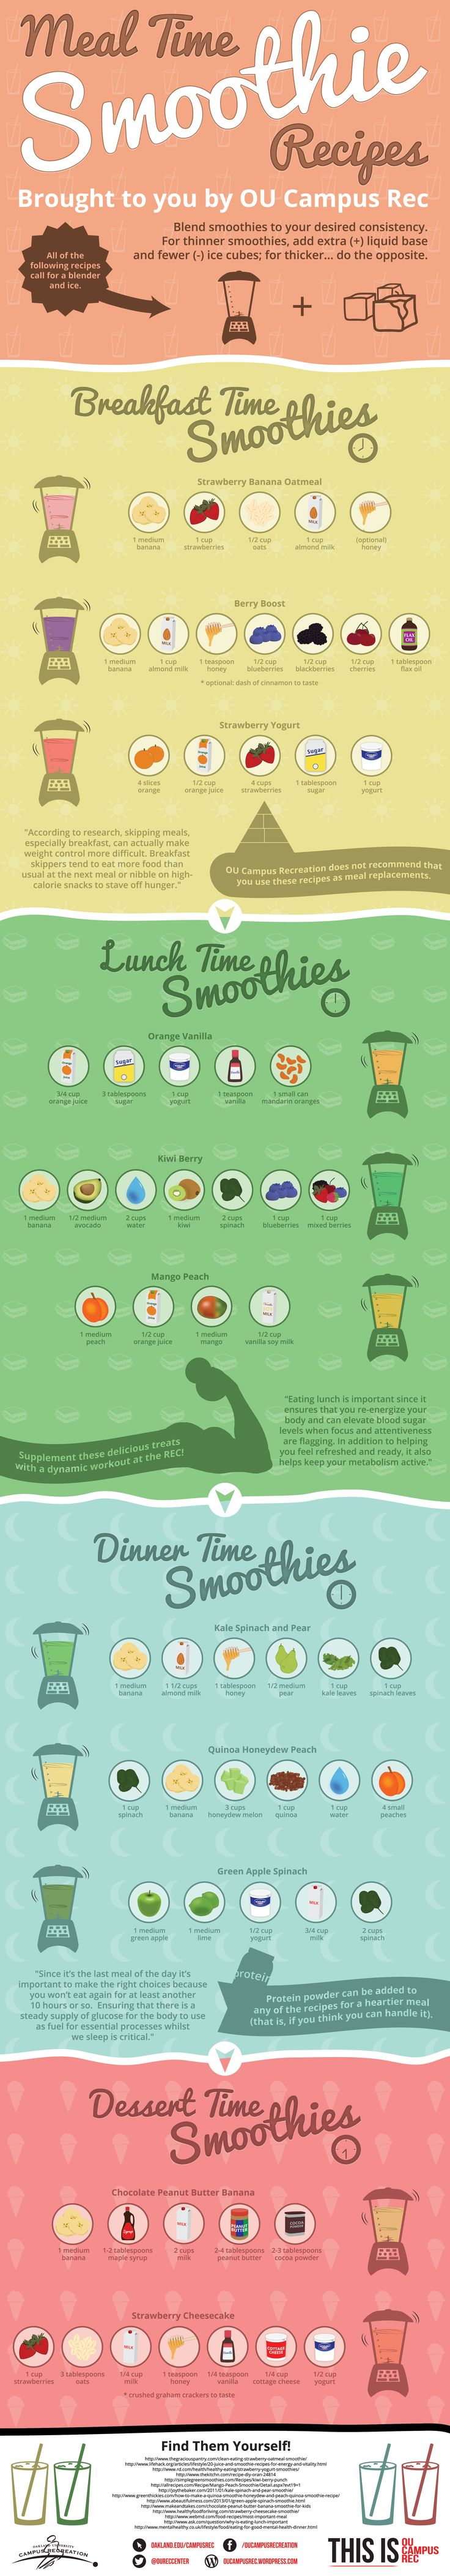 Add these smoothies to your next meal to give yourself an extra boost of energy! #energyboost #smoothies